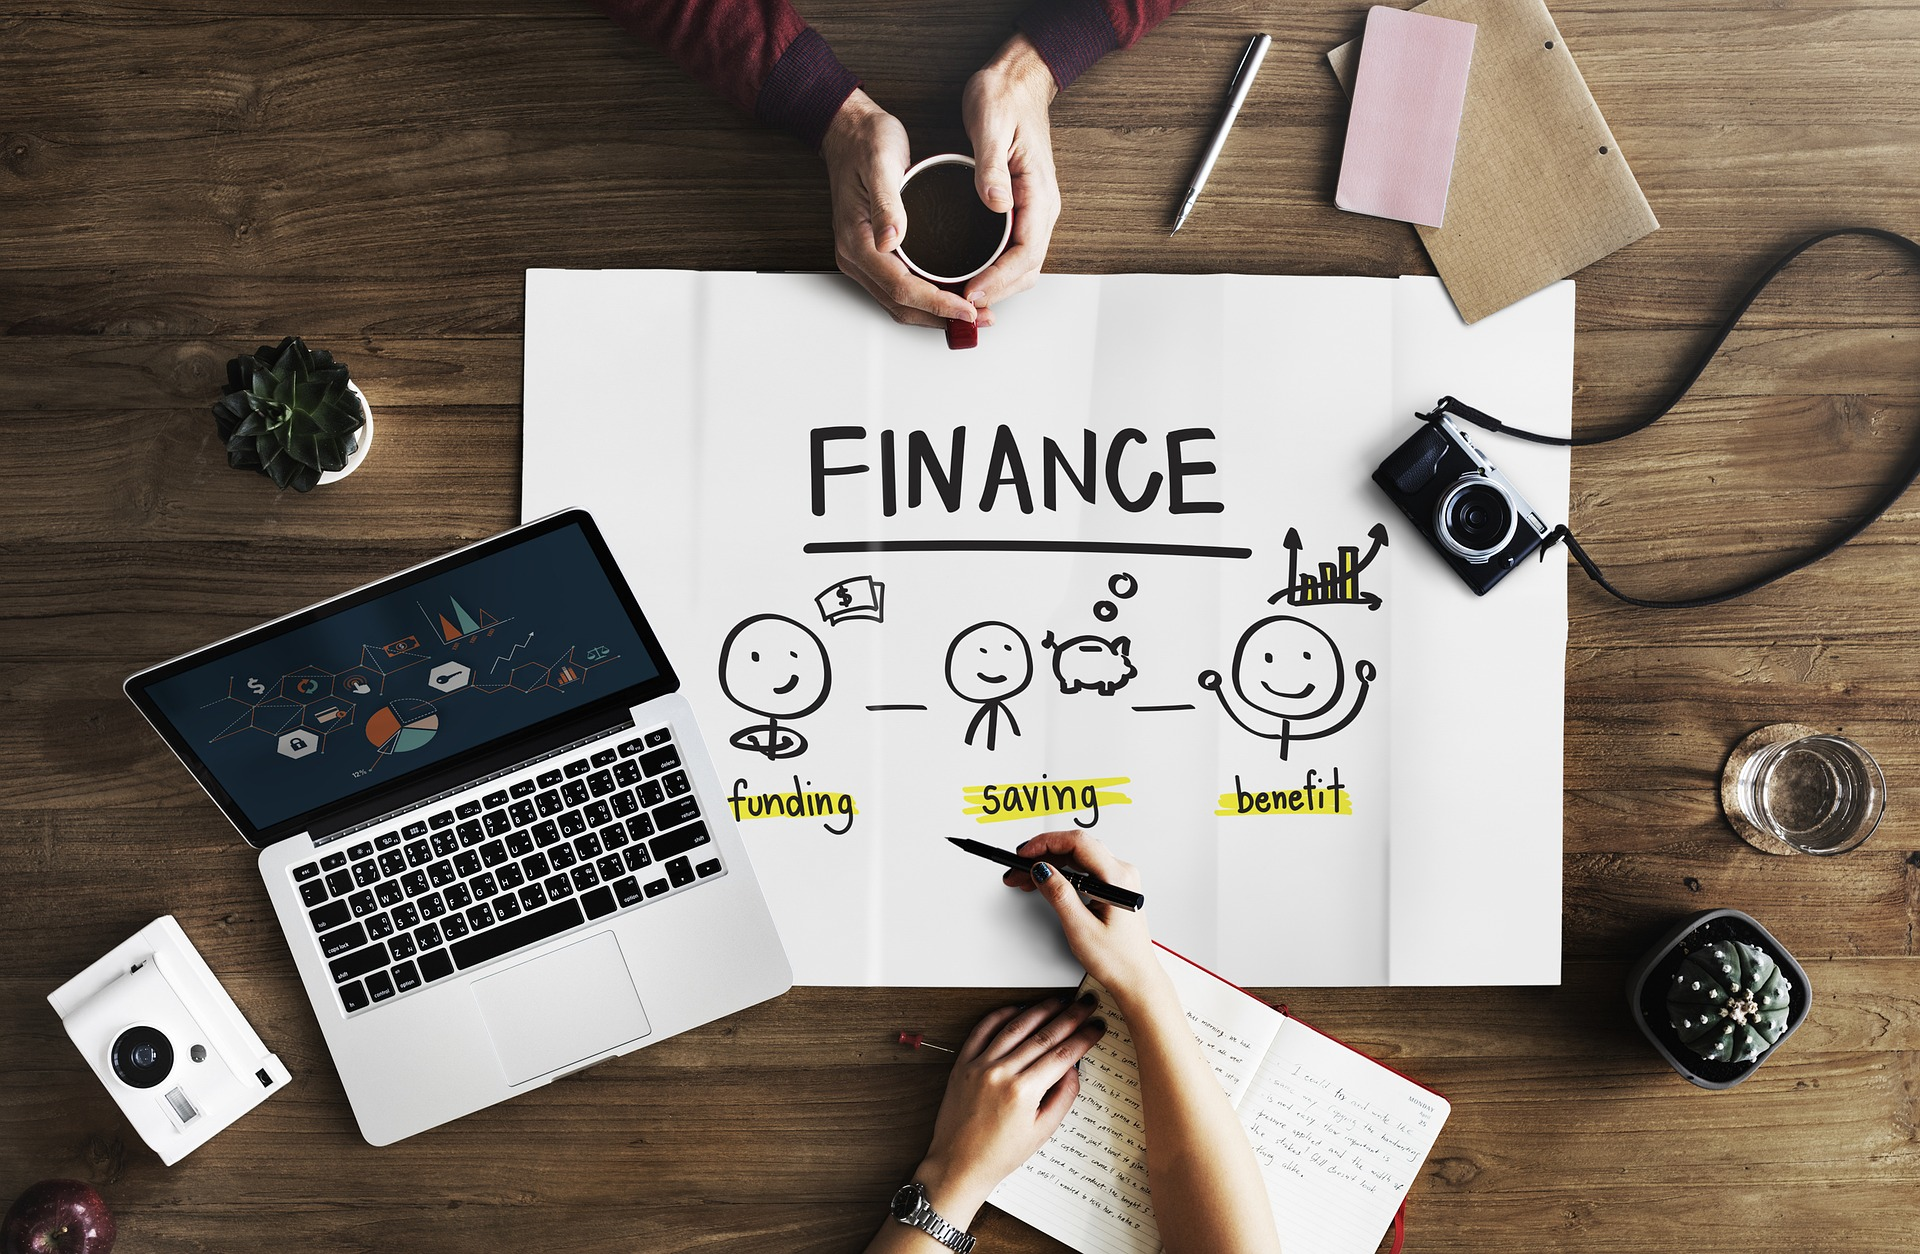 UK fintech MarketInvoice wins backing from Barclays and